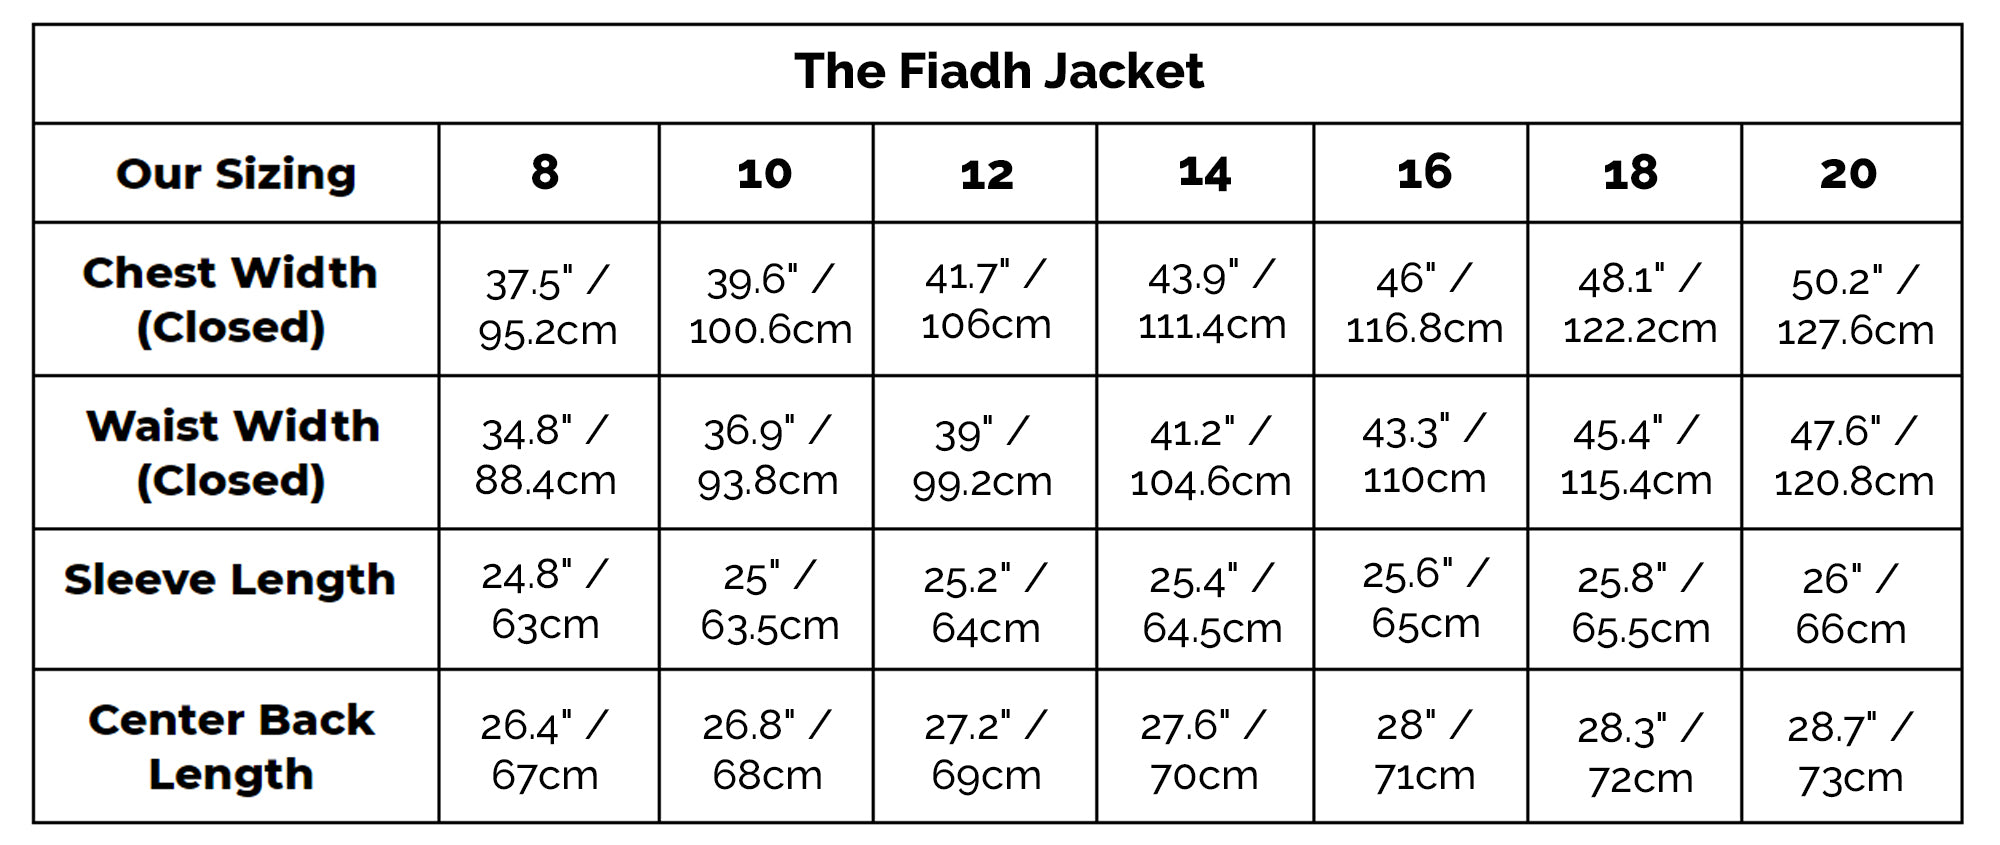 The Fiadh Jacket Size Guide